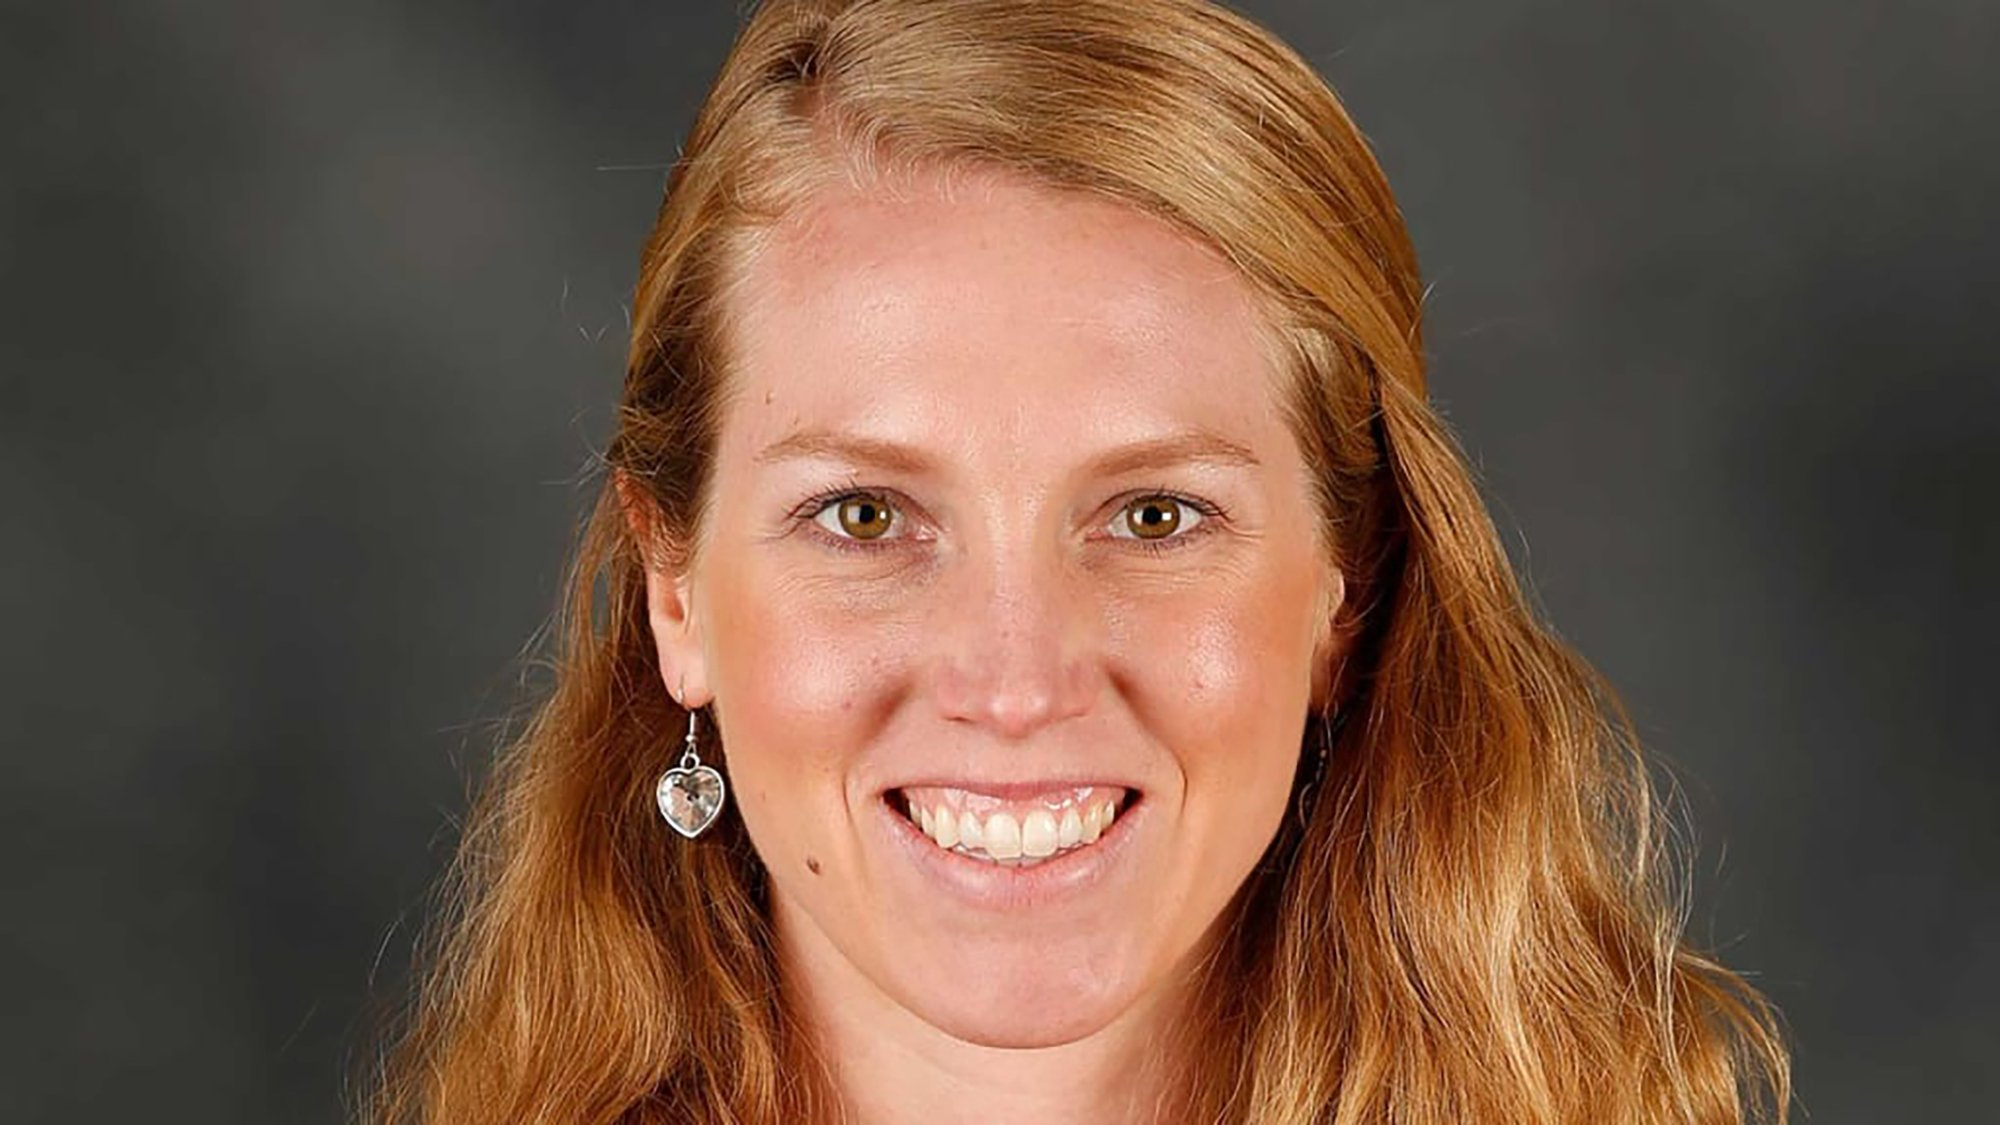 The Giants rounded out new manager Gabe Kapler's coaching staff by adding two Major League assistant coaches, including former Sacramento State softball player Alyssa Nakken, who is poised to become the first woman to hold a coaching position on a big league staff. (Credit: MLB)